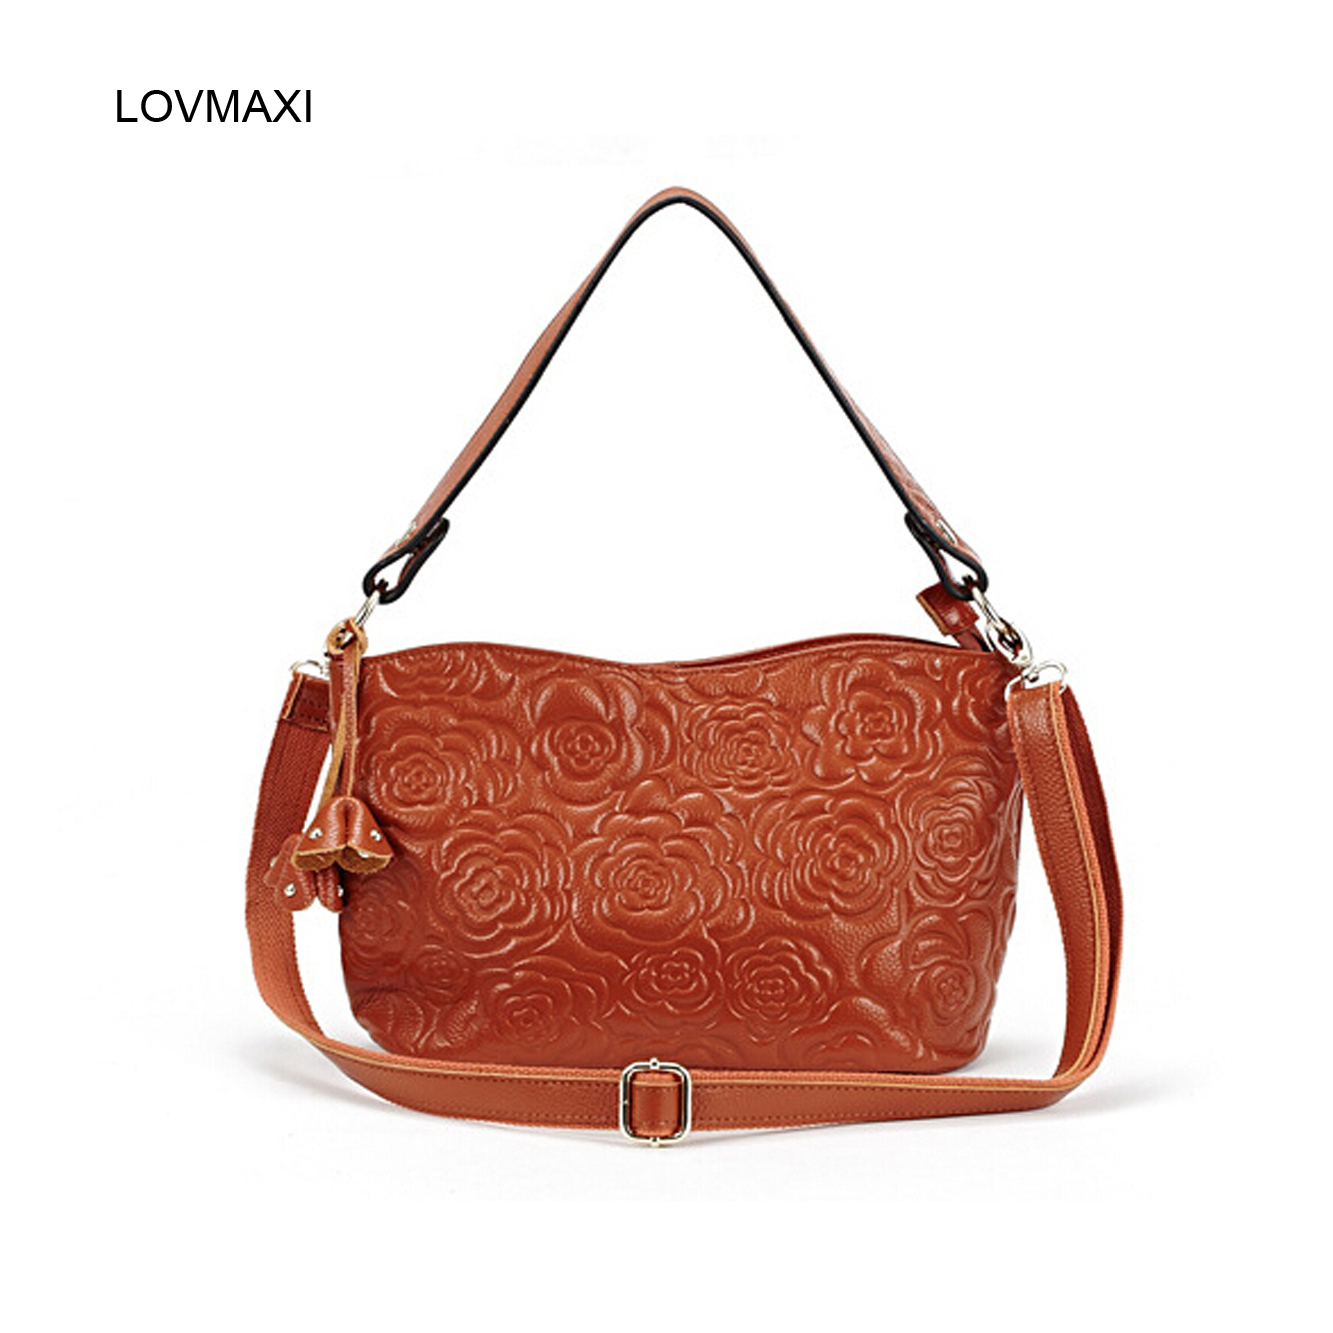 LOVMAXI Guaranteed 100% Genuine Leather Women Bags Floral Embossed Ladies Handbag Lacquered Cross Body Bag Shoulder Tote Fashion hot fashion chinese style women handbag embroidery ethnic summer fashion handmade flowers ladies tote shoulder bags cross body